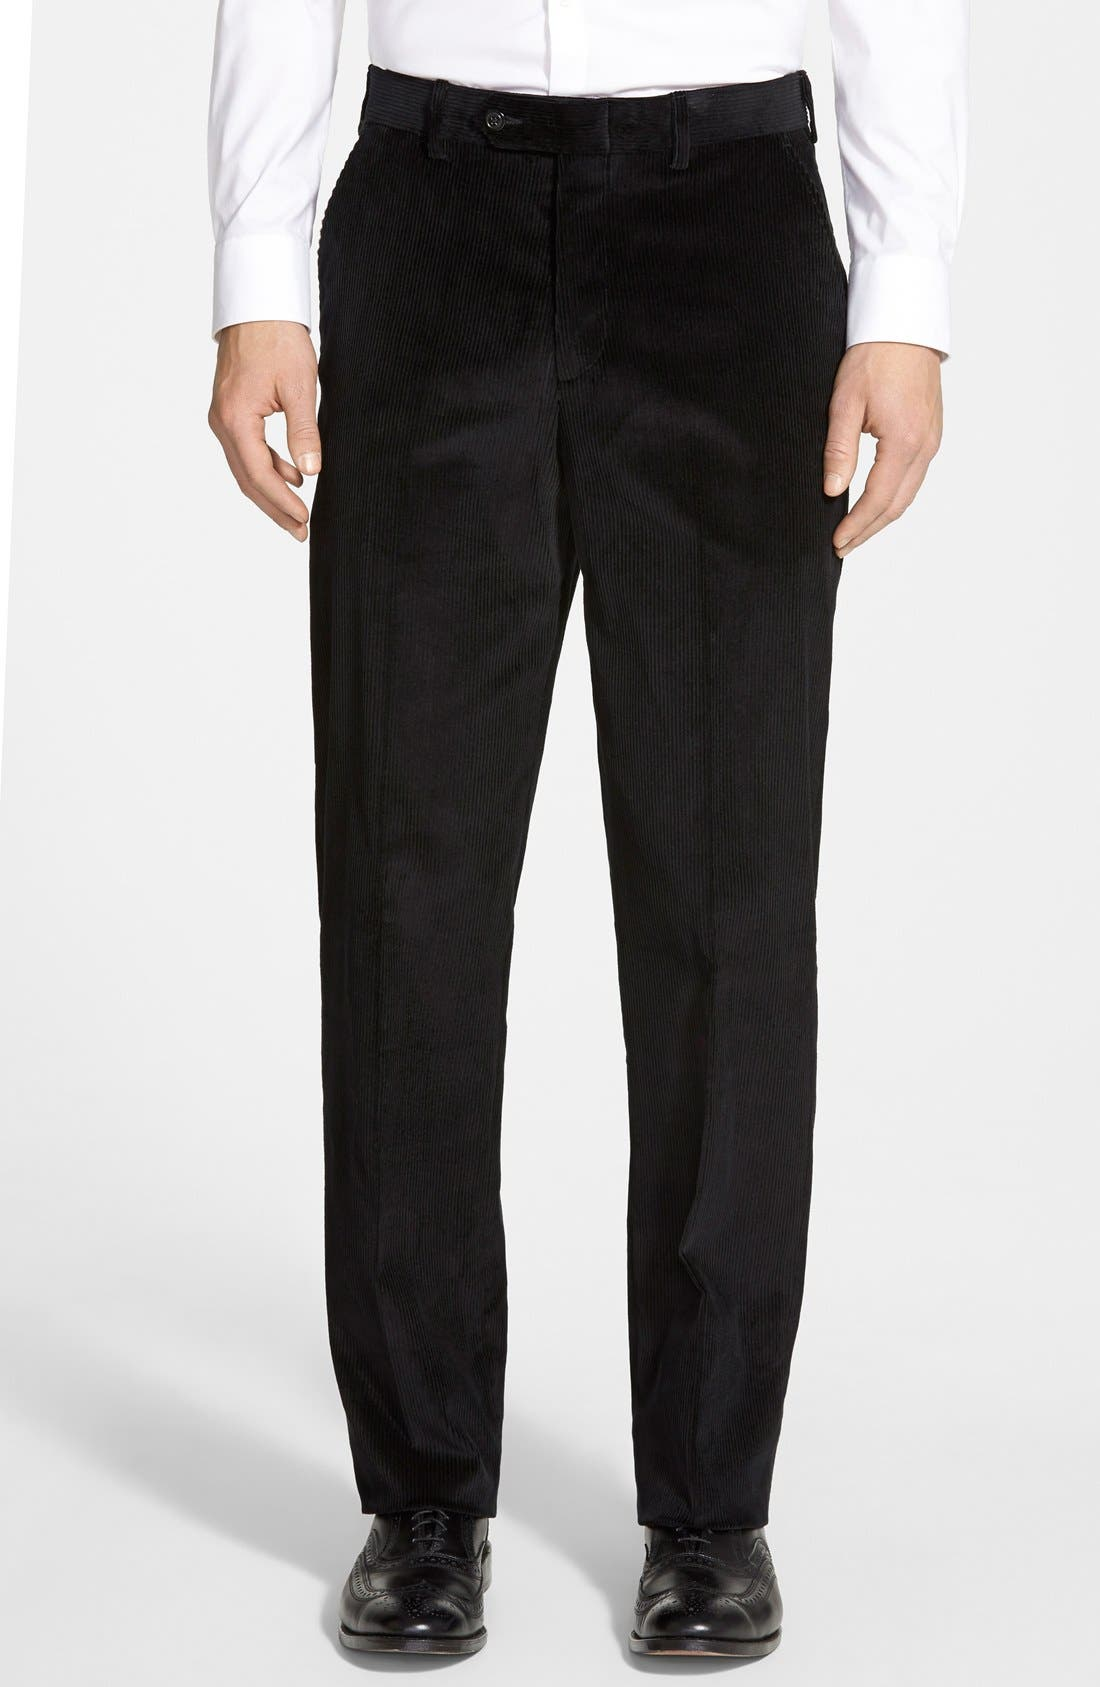 Black Corduroy Pants Mens qVQzBT9X